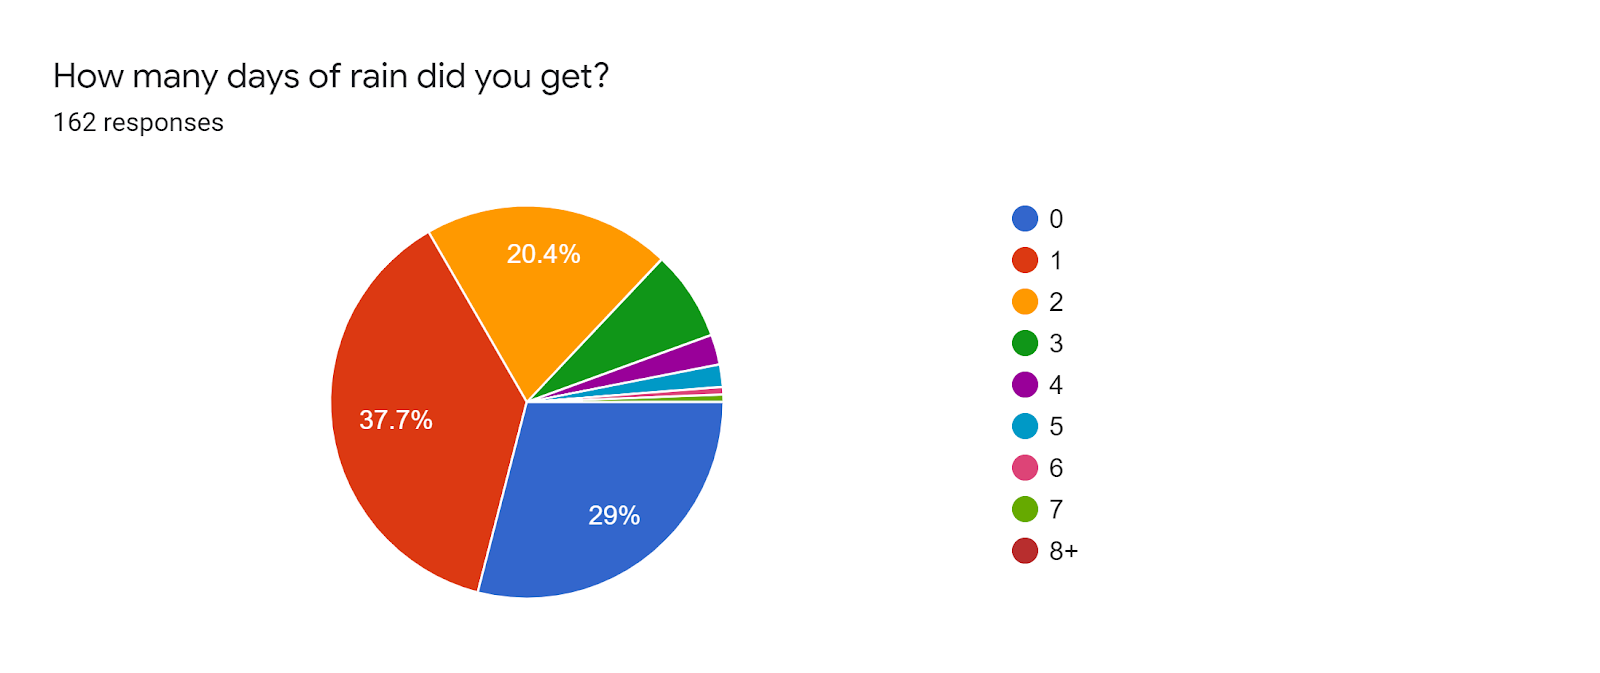 Forms response chart. Question title: How many days of rain did you get?. Number of responses: 162 responses.